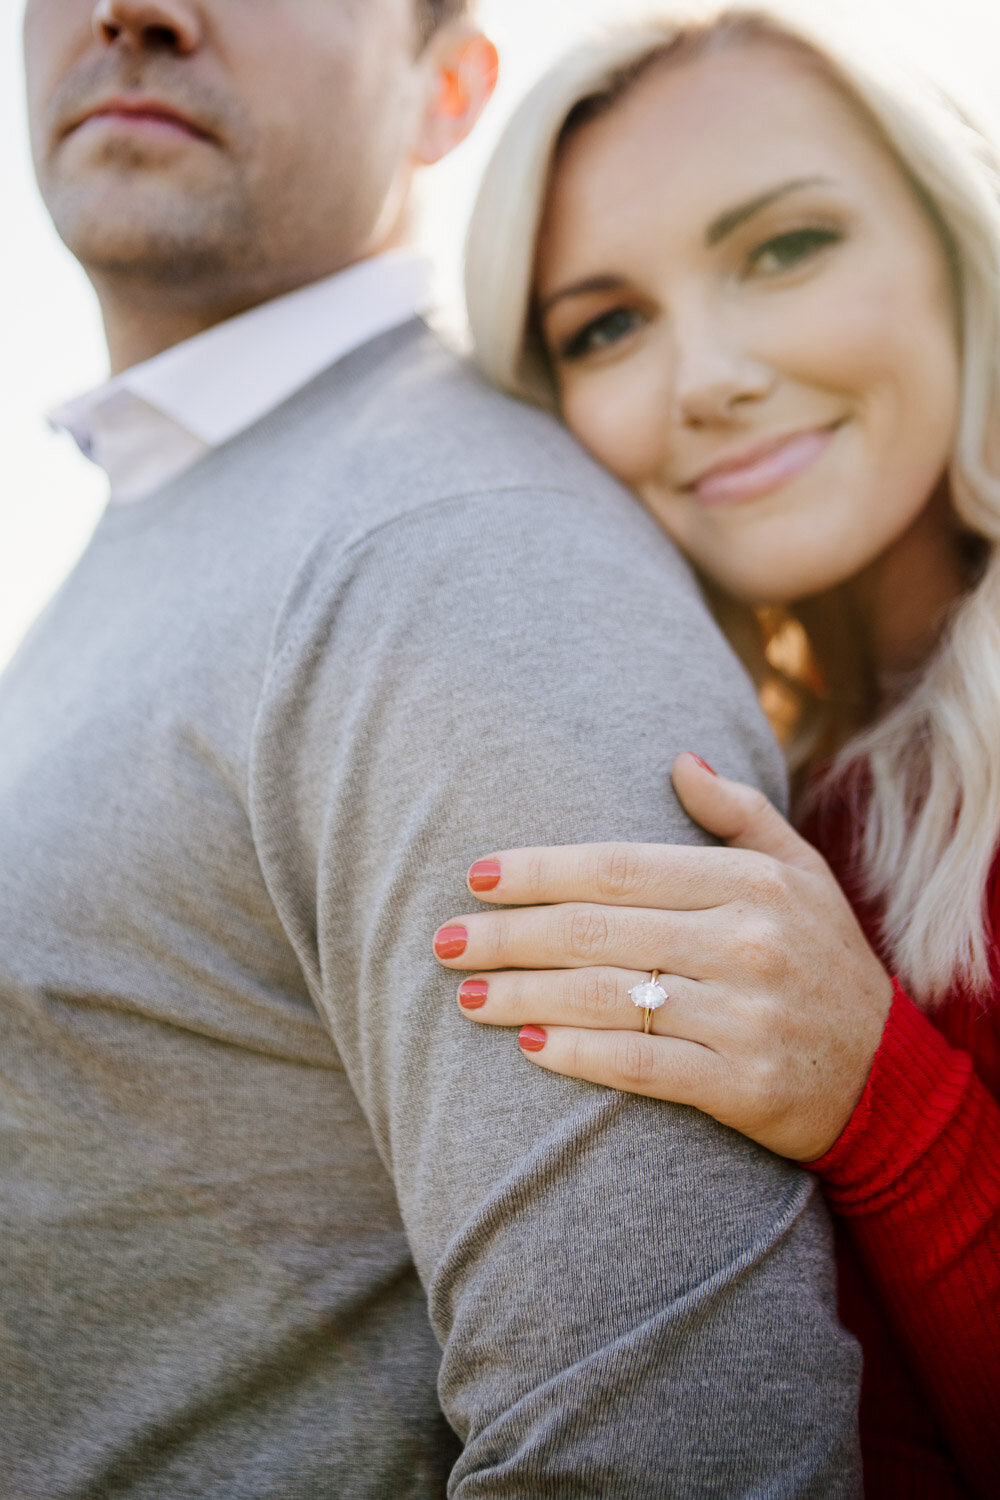 Couple embracing and focusing on engagement ring on woman's hand